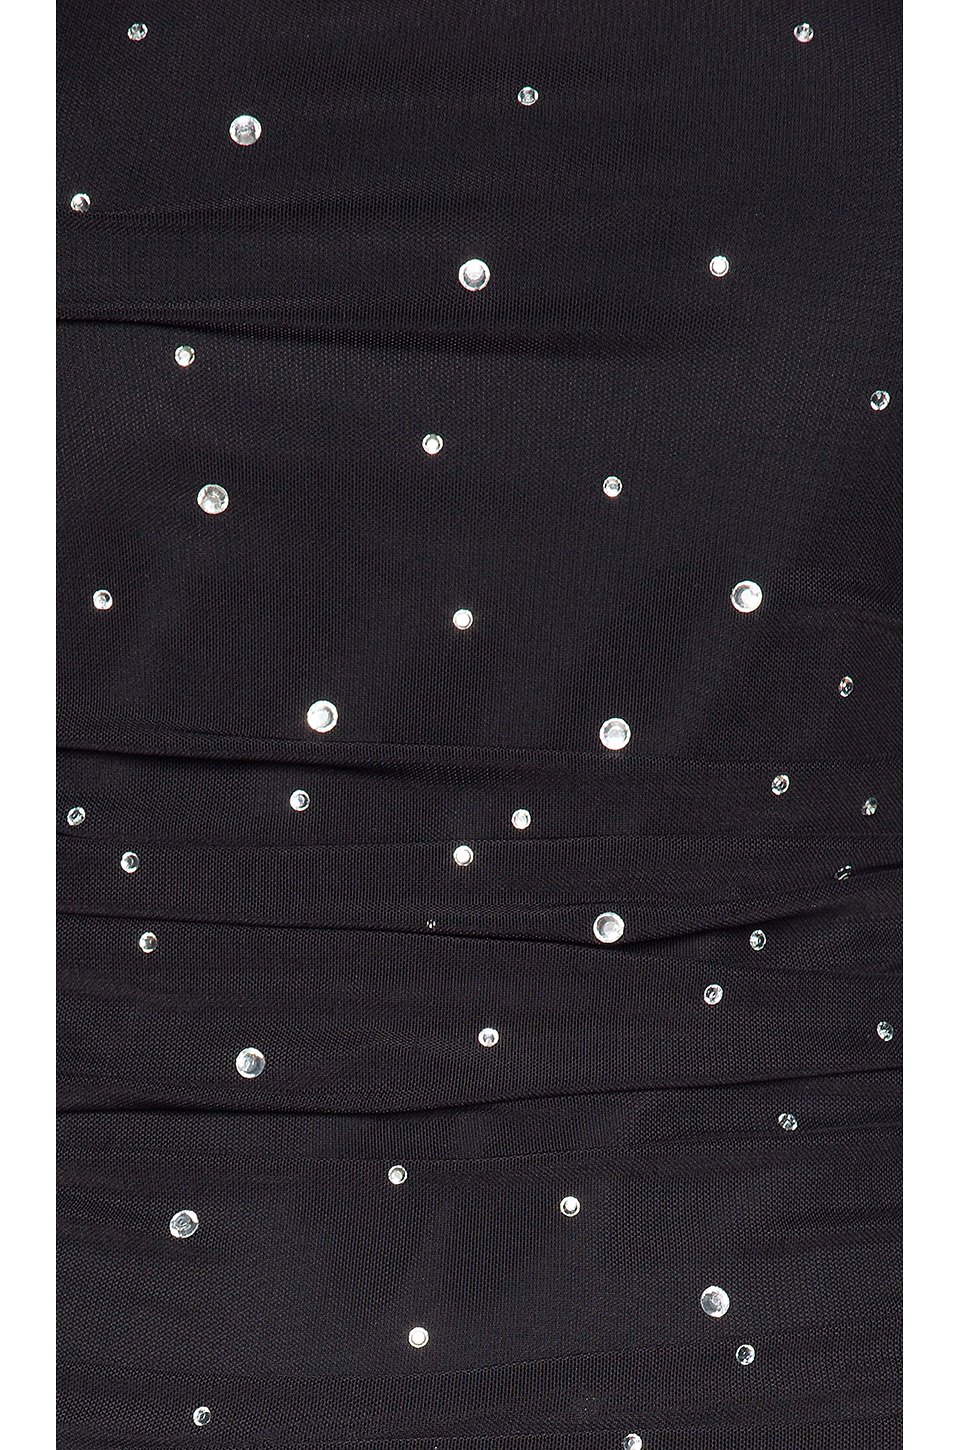 7df0435941a6 Buy Original NBD Kerr Embellished Mini Dress at Indonesia | BOBOBOBO